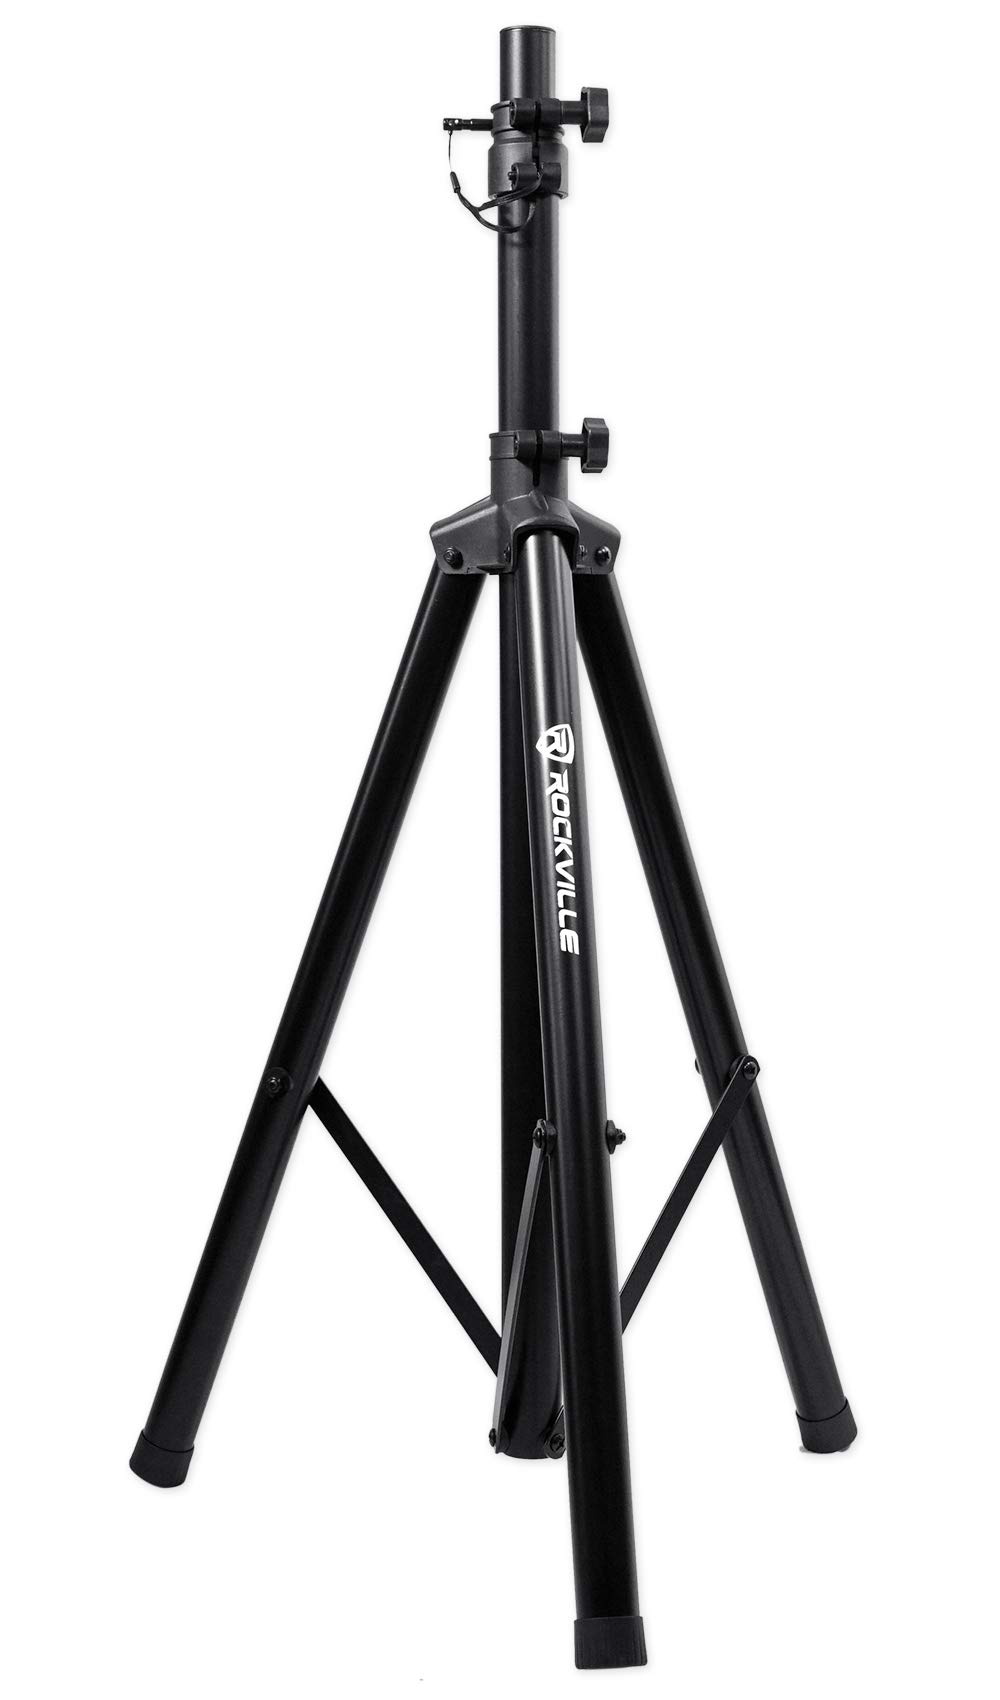 Rockville Recording Studio Microphone Isolation Shield + Heavy Duty Tripod Stand by Rockville (Image #7)